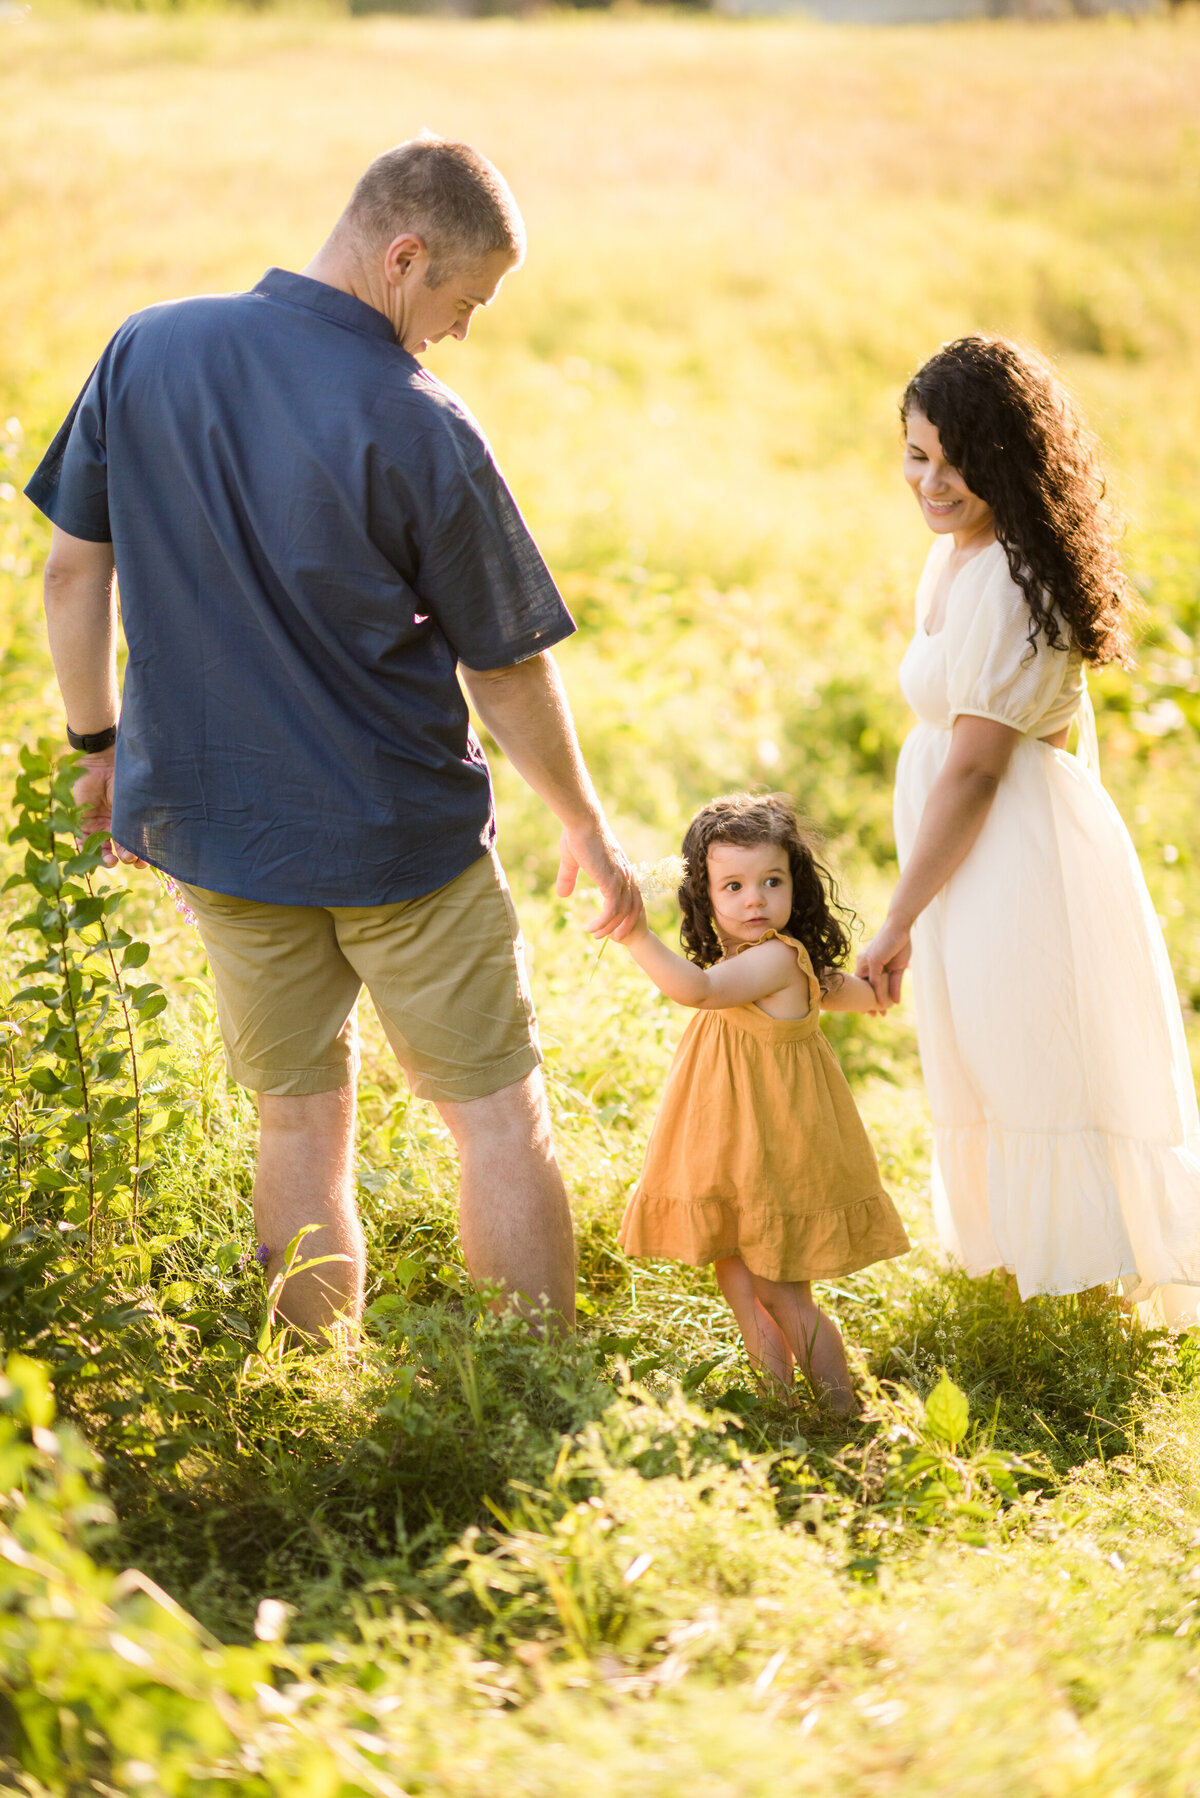 Boston-family-photographer-bella-wang-photography-Lifestyle-session-outdoor-wildflower-26